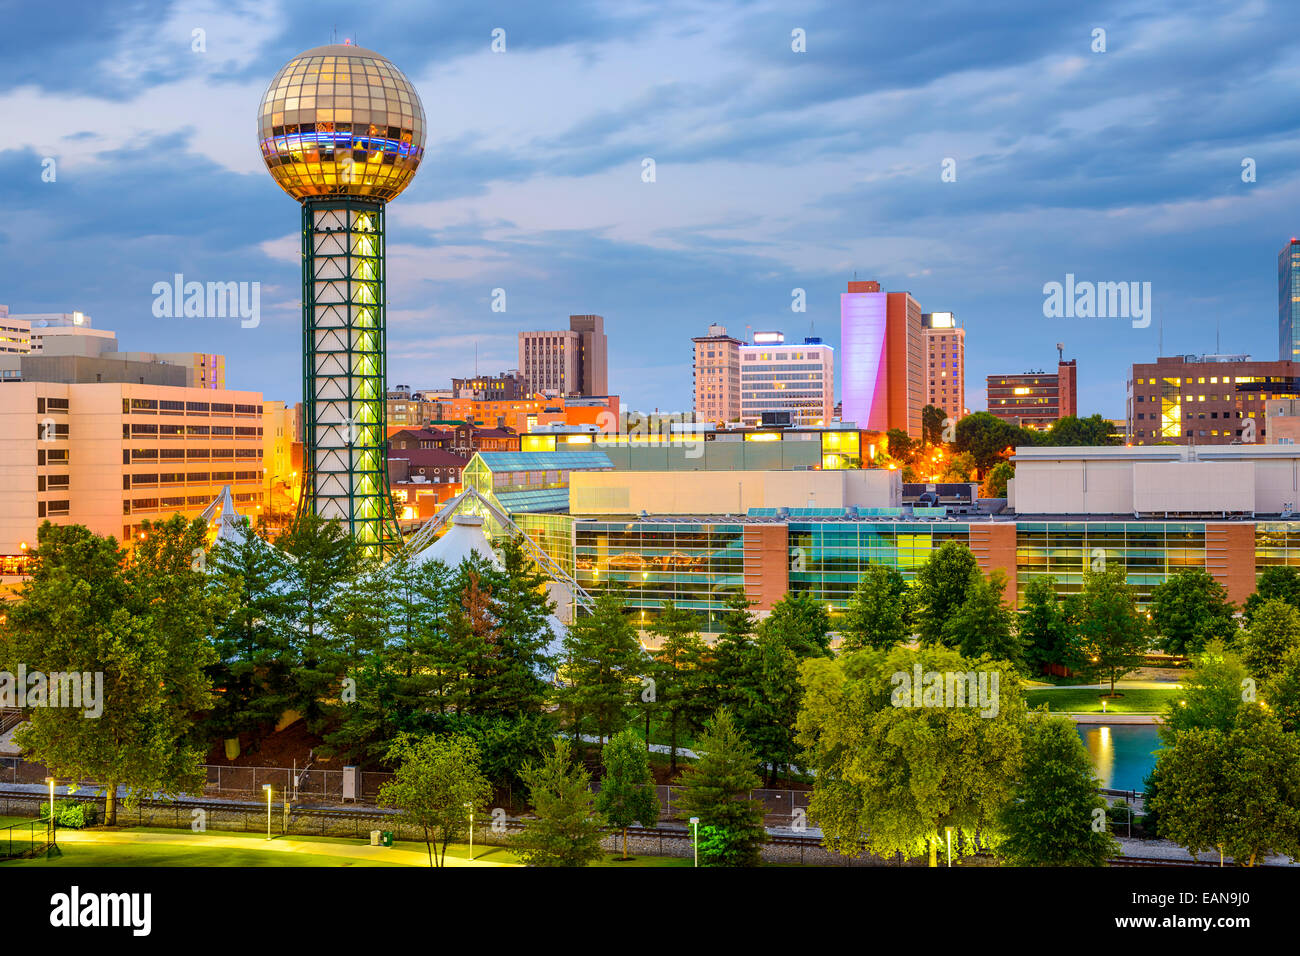 Knoxville, Tennessee, USA city skyline at World's fair Park. - Stock Image